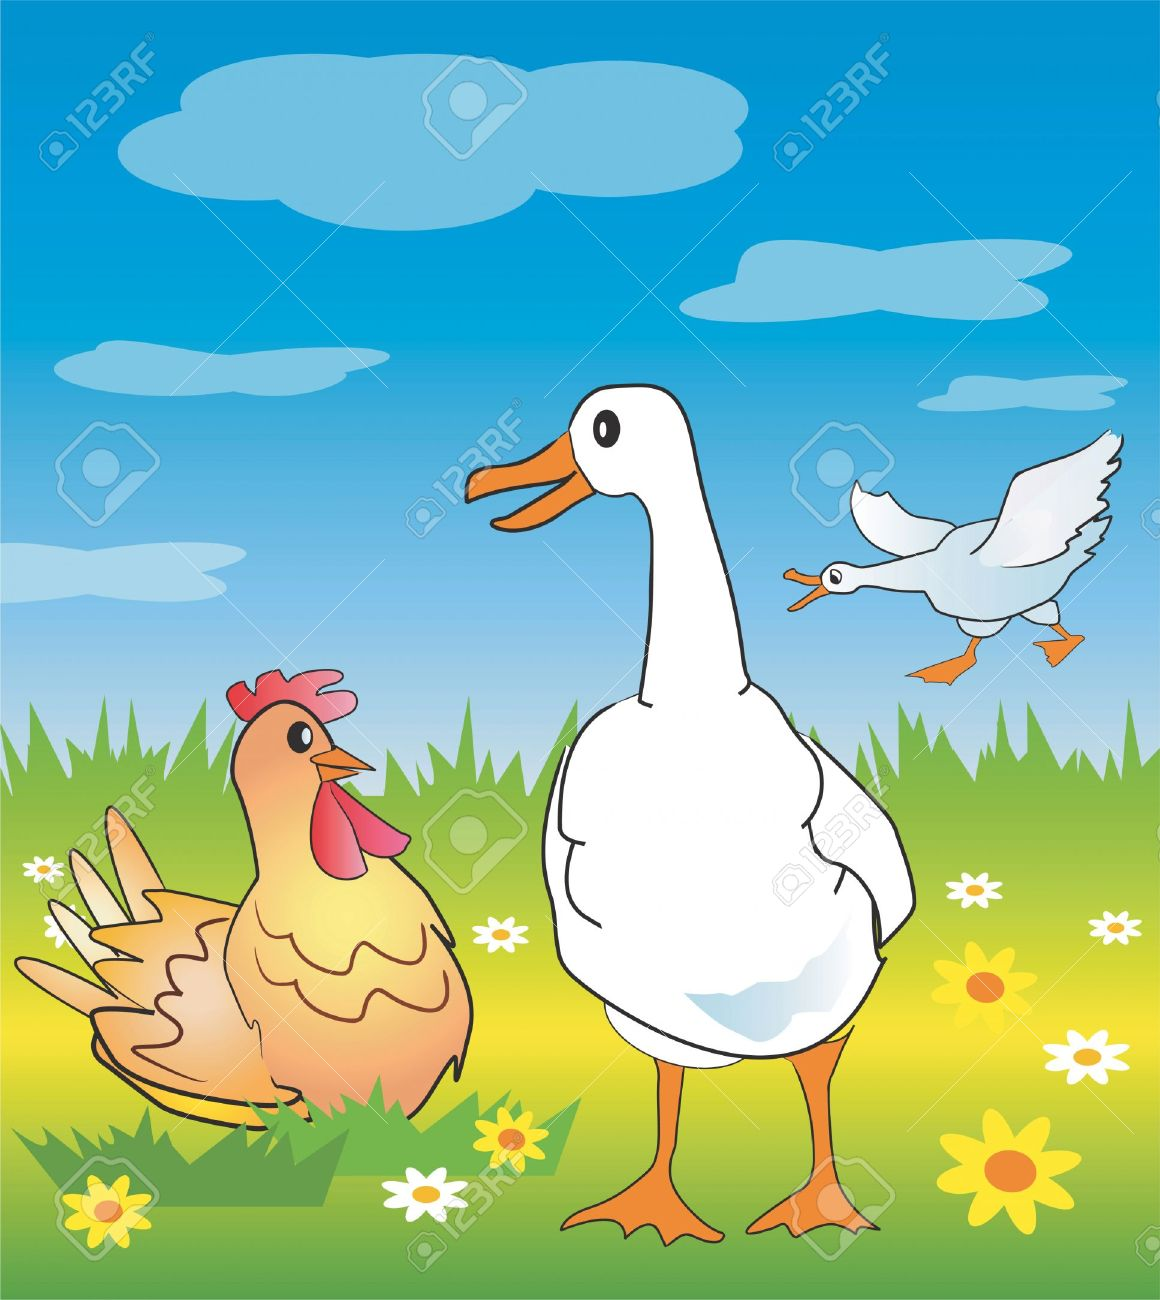 Goose And Chicken In A Spring Meadow. Vector Illustration. Royalty.